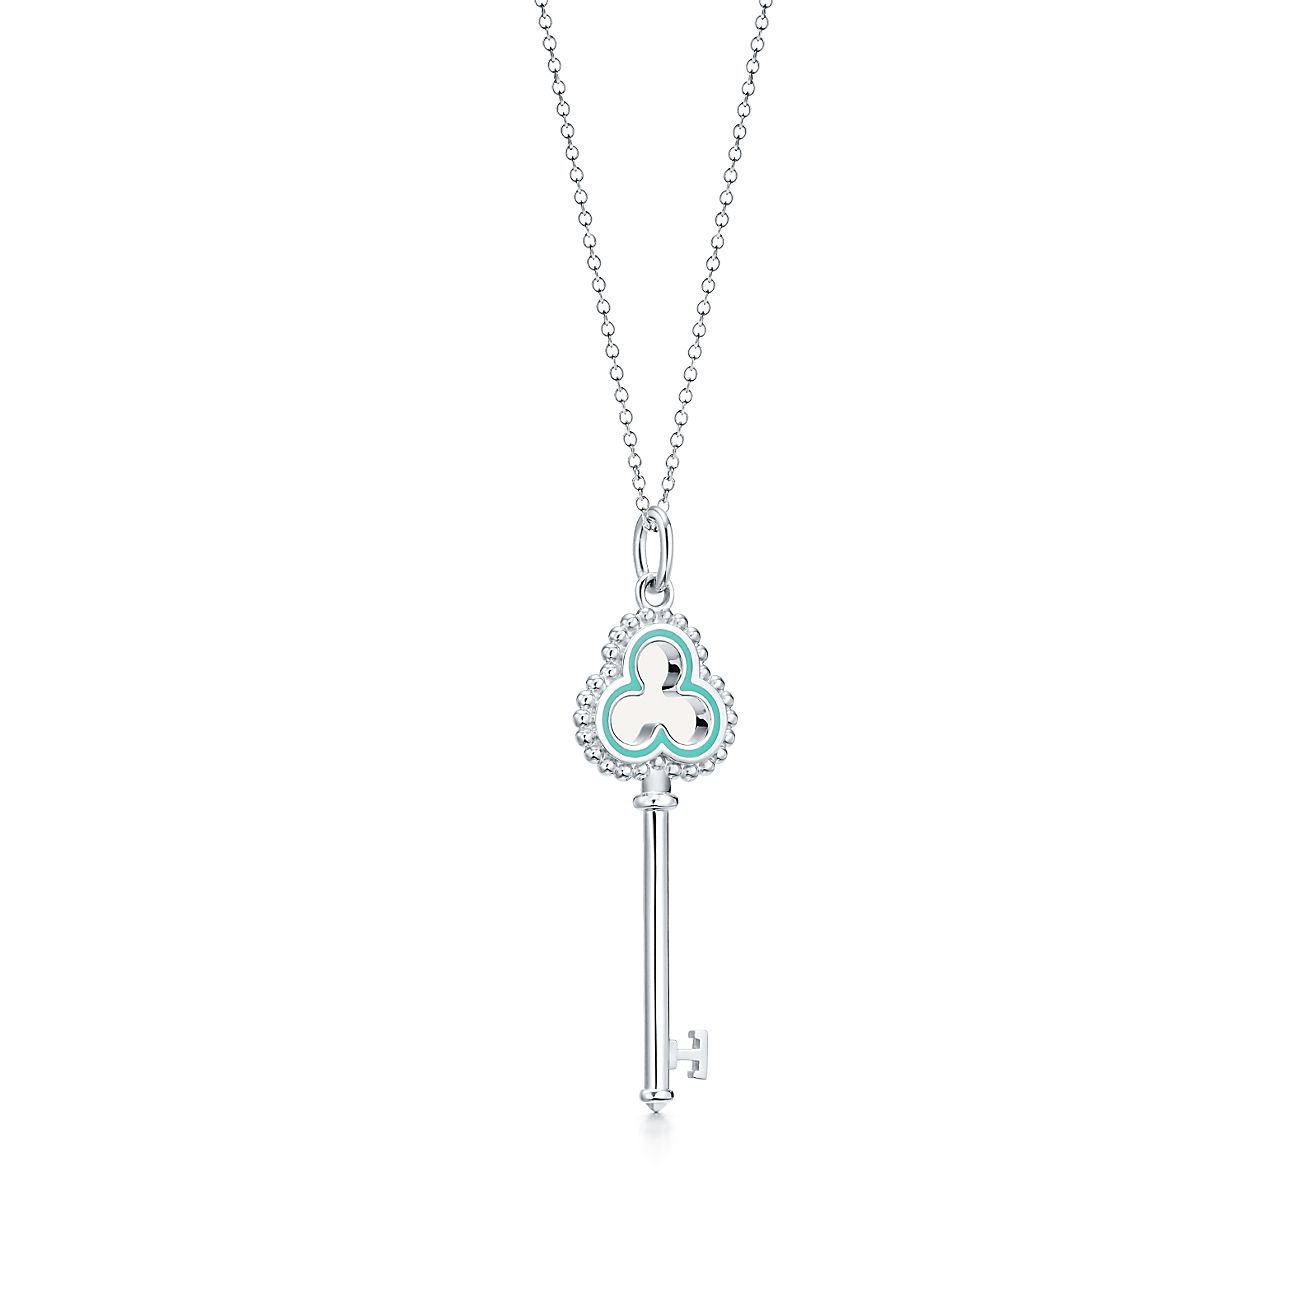 Tiffany keys beaded open trefoil key pendant in sterling silver tiffany keysbeaded open trefoilbrkey pendant aloadofball Gallery